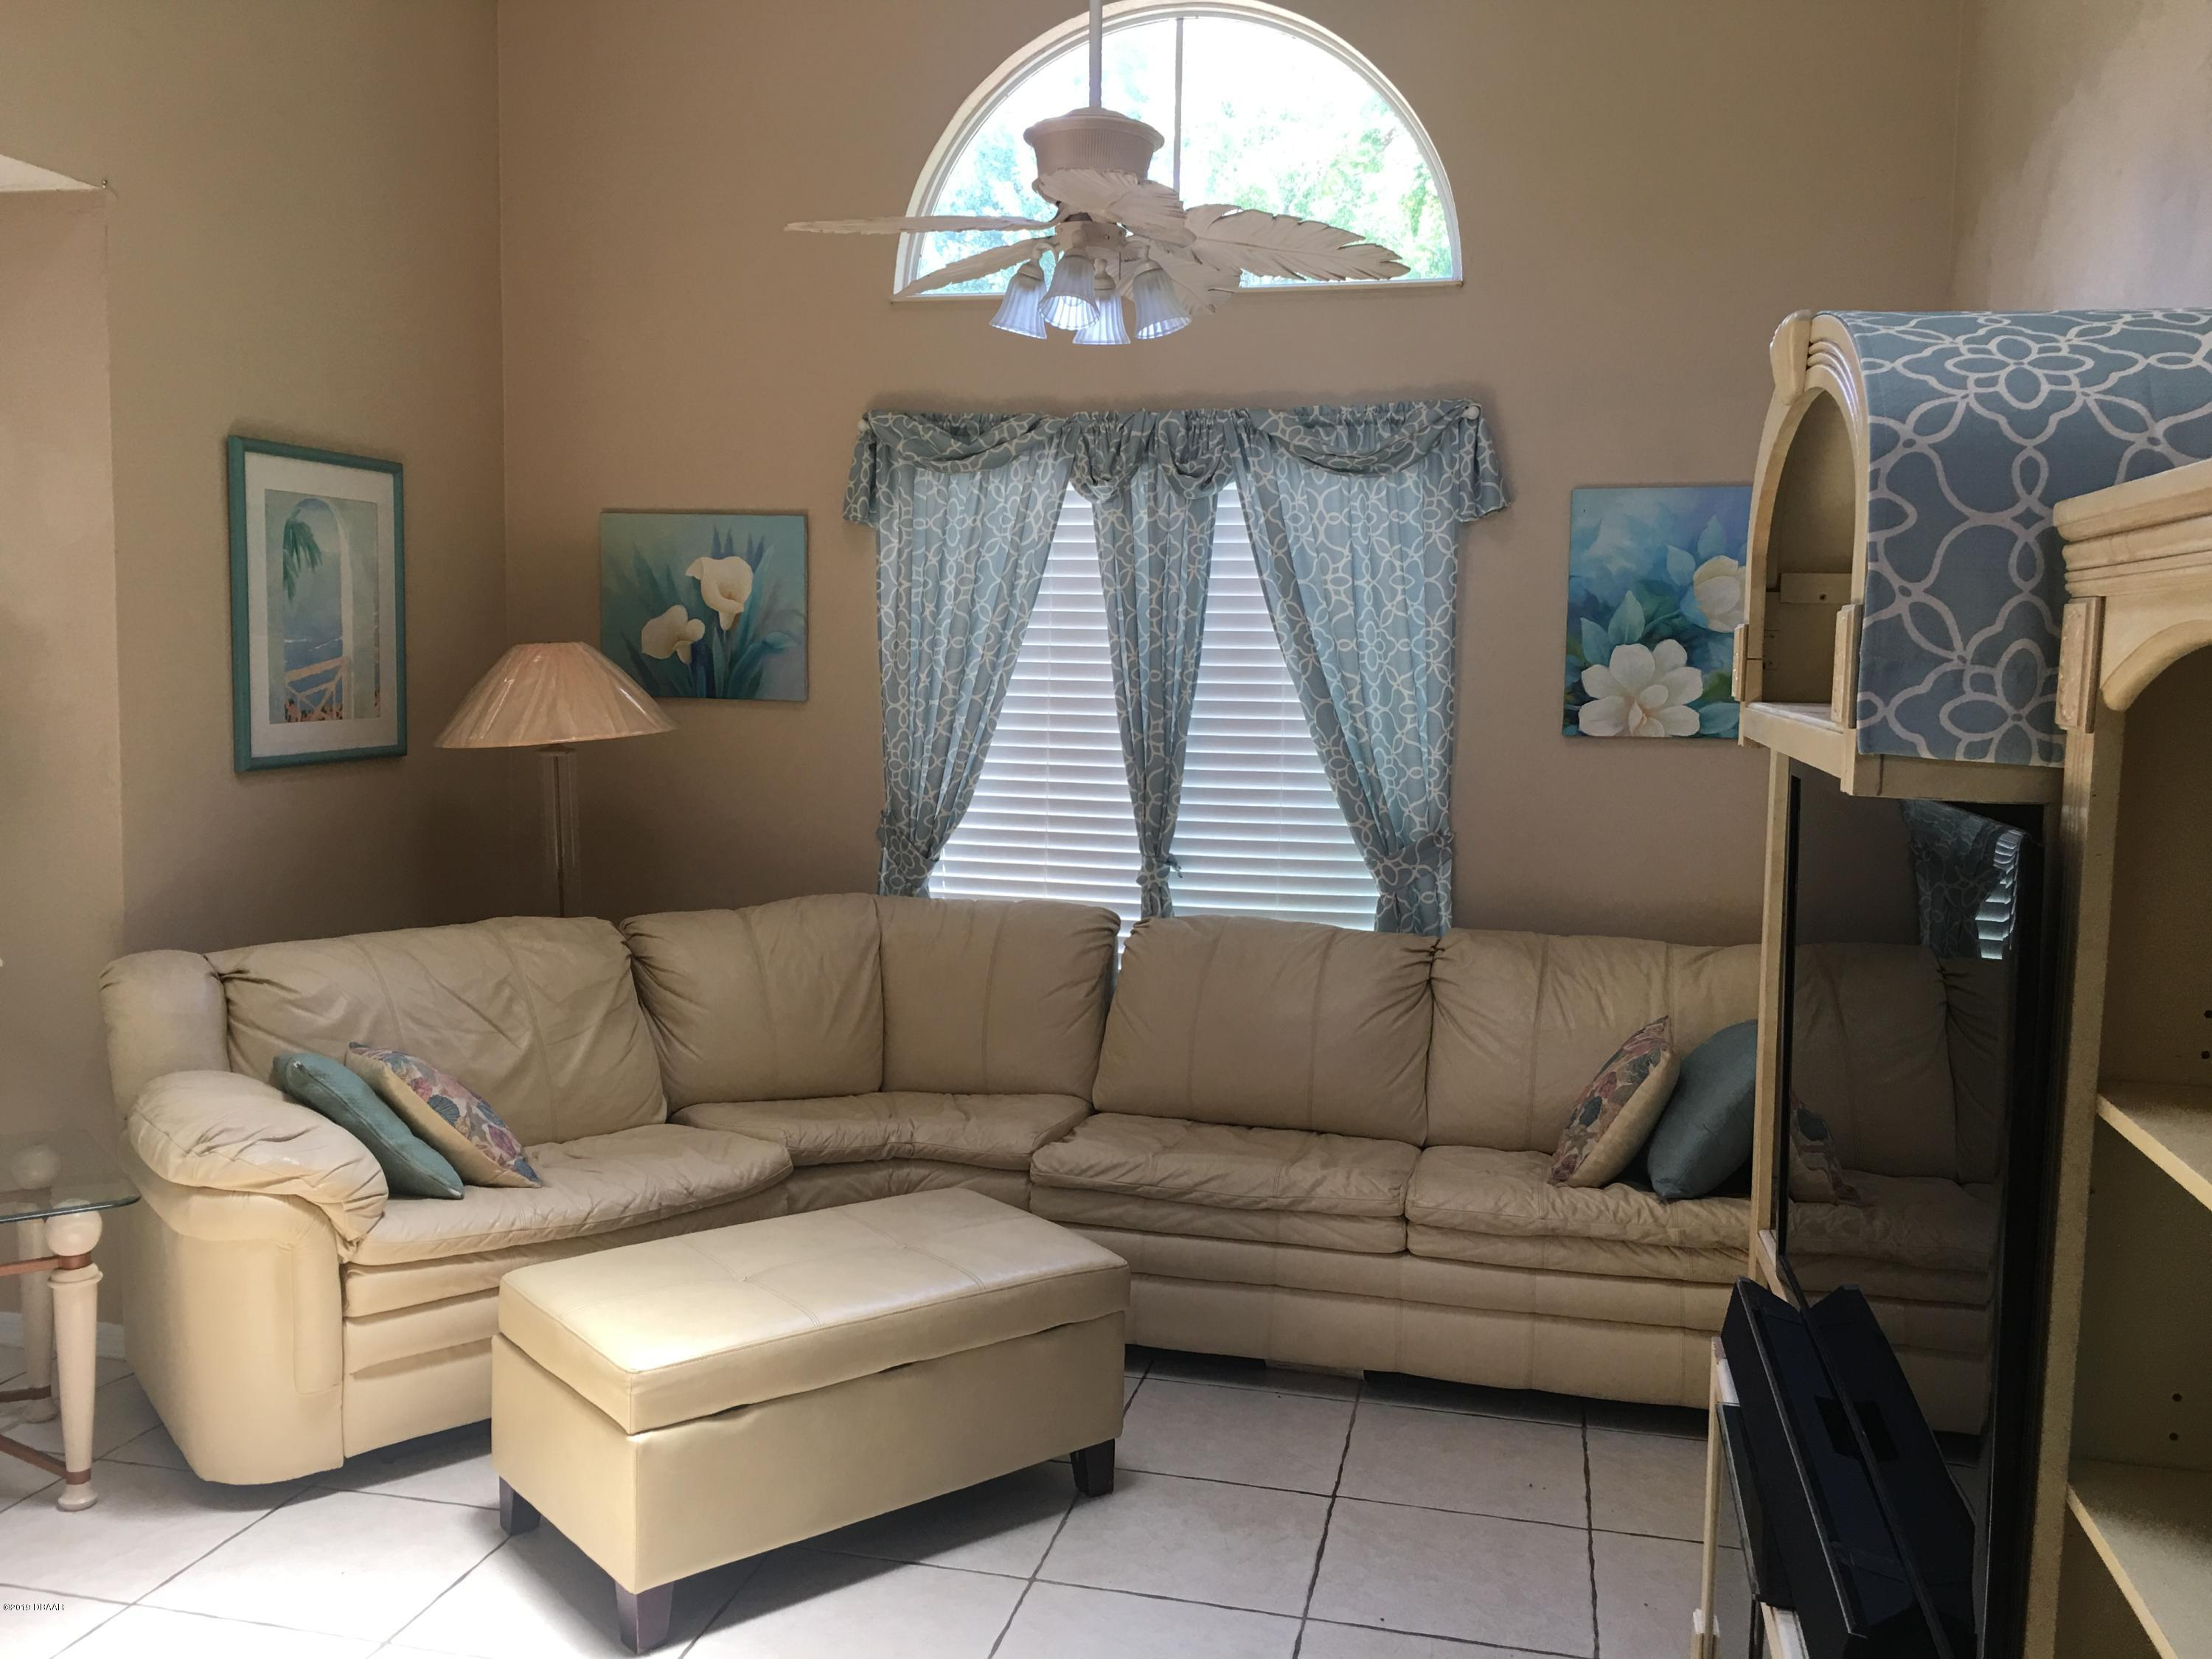 172 Cedarwood Village Daytona Beach - 2